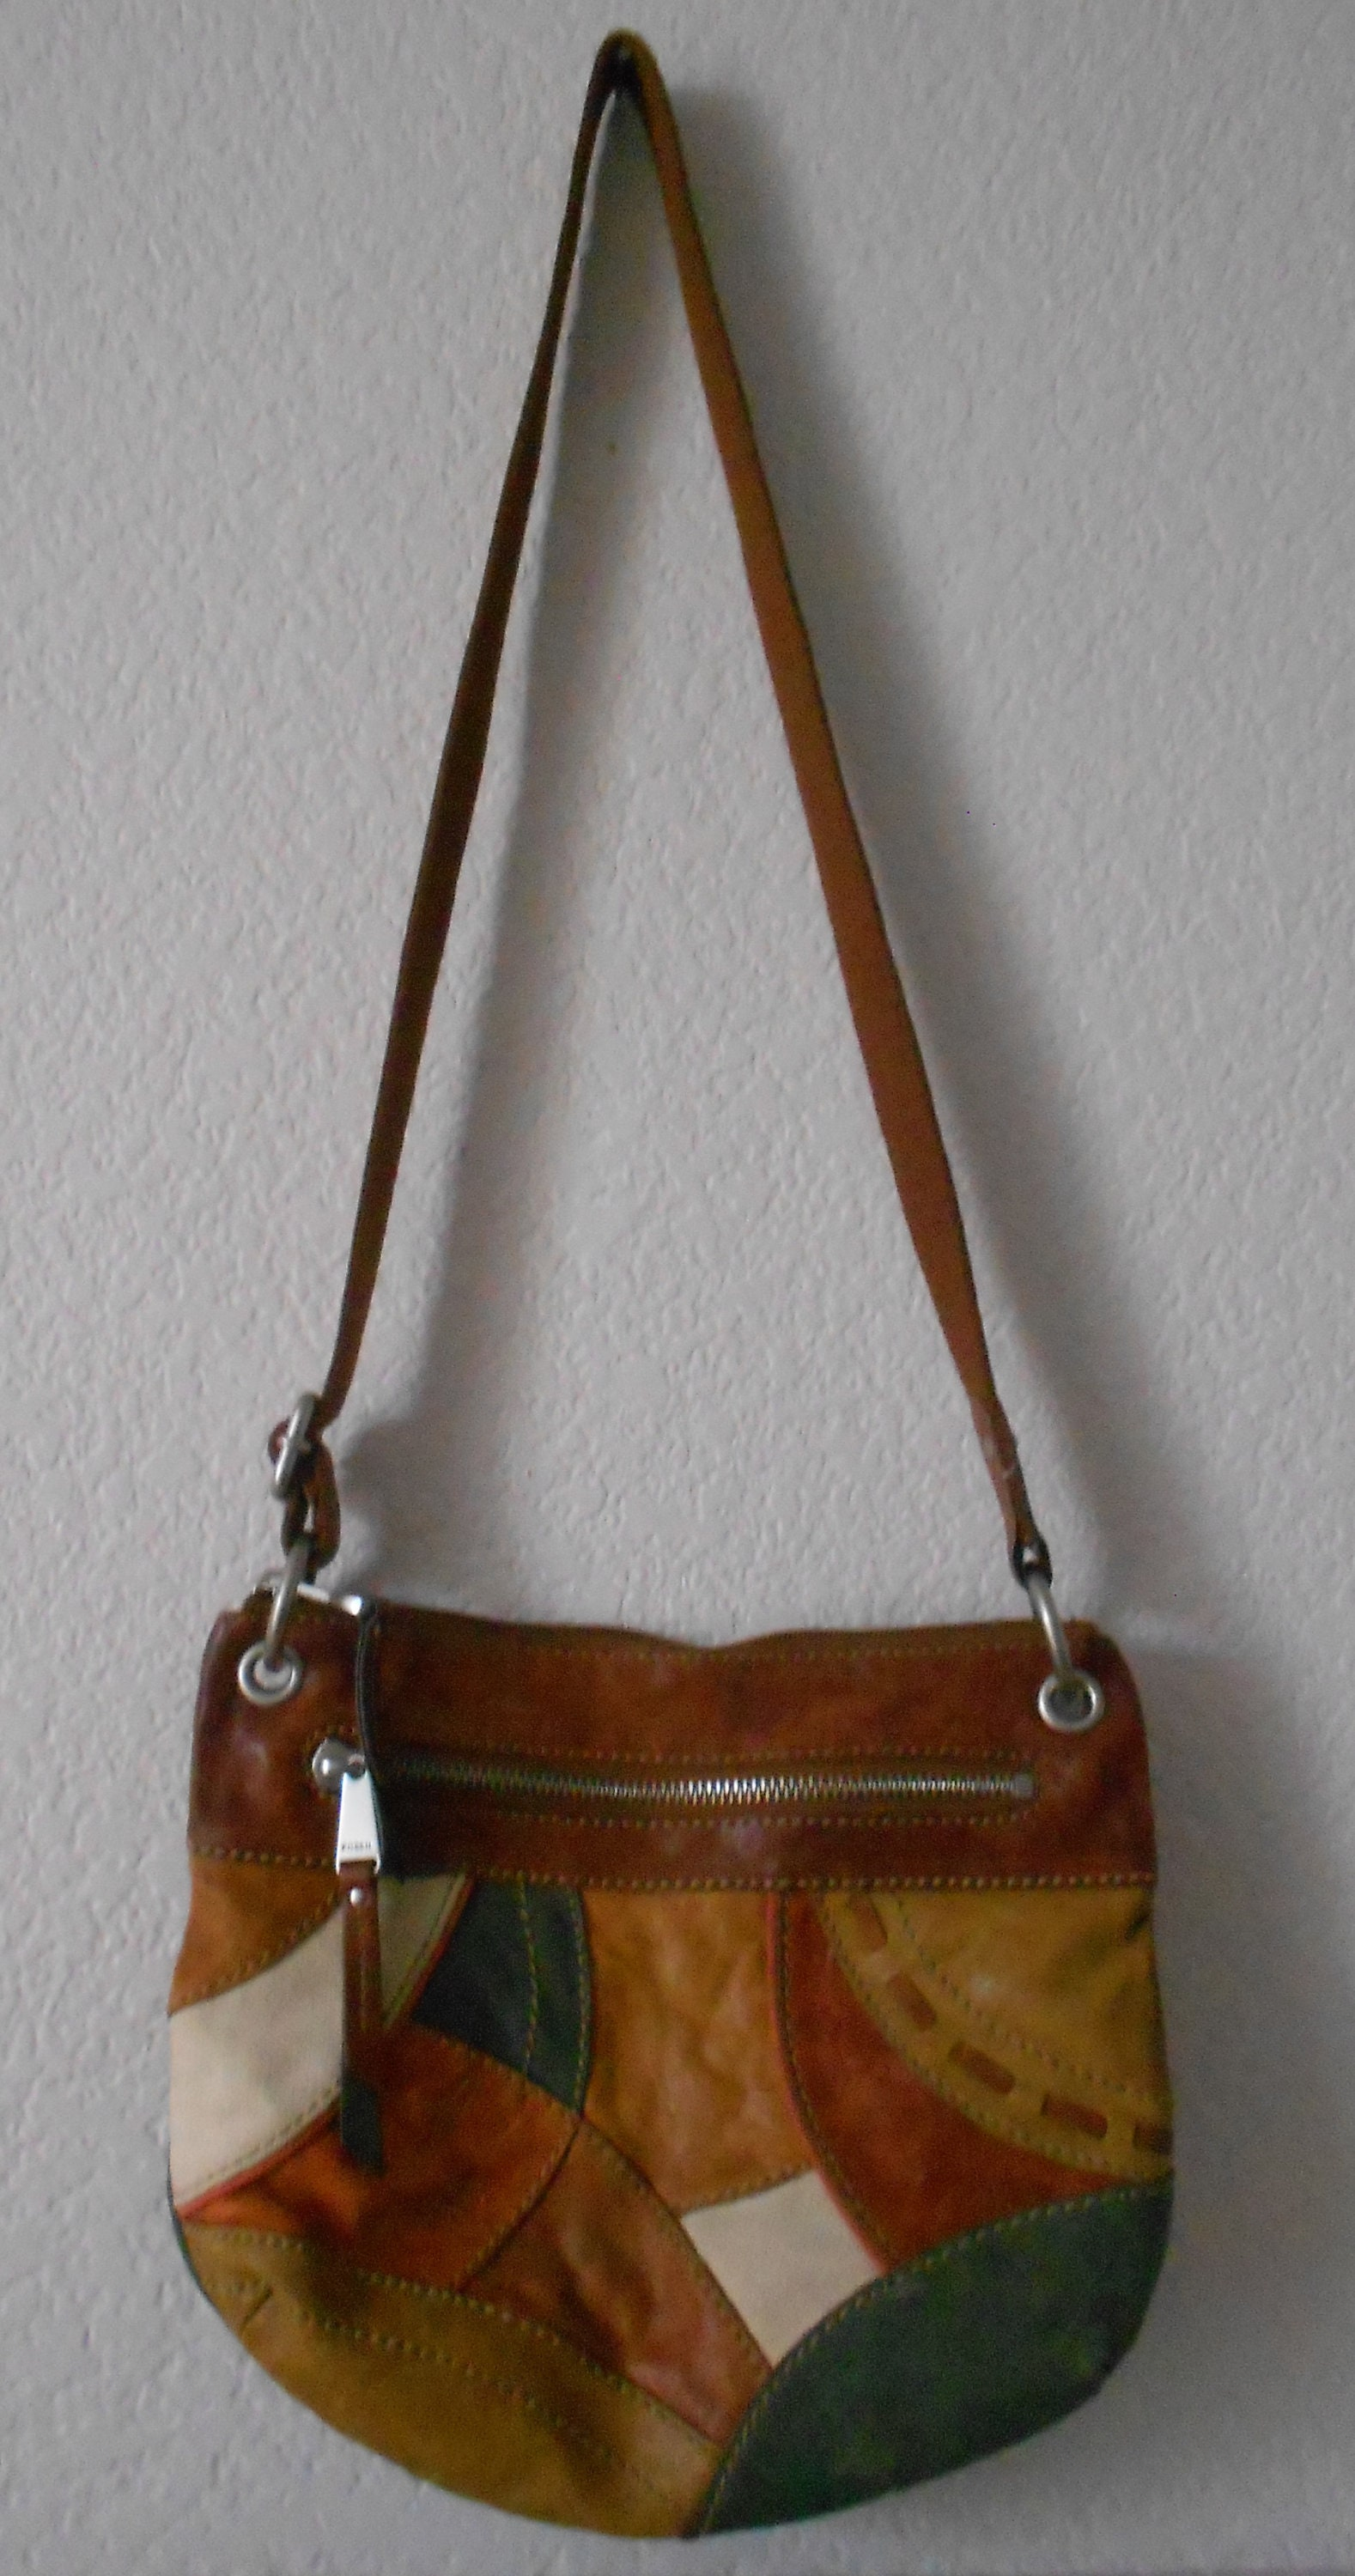 Ladies Leather Patch Handbag with Dual Zipped Compartments /& Adjustable Strap